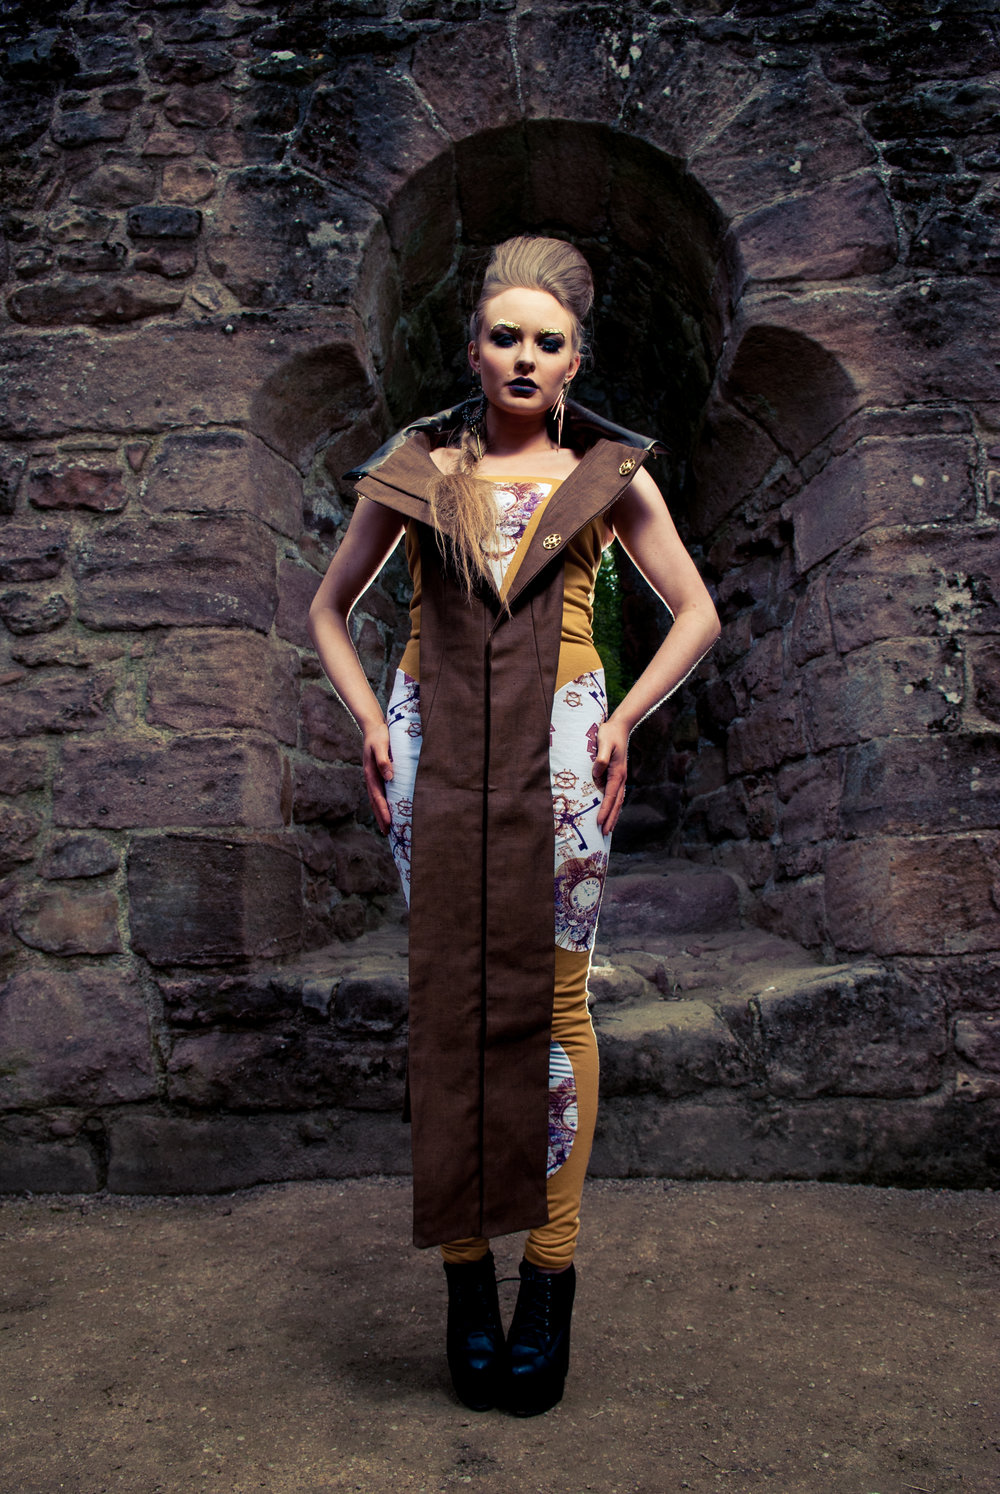 zaramia-ava-zaramiaava-leeds-fashion-designer-ethical-sustainable-tailored-minimalist-versatile-drape-wrap-top-cowl-bodysuit-bandeau-skirt-jumpsuit-panels-print-belt-styling-womenswear-model-3